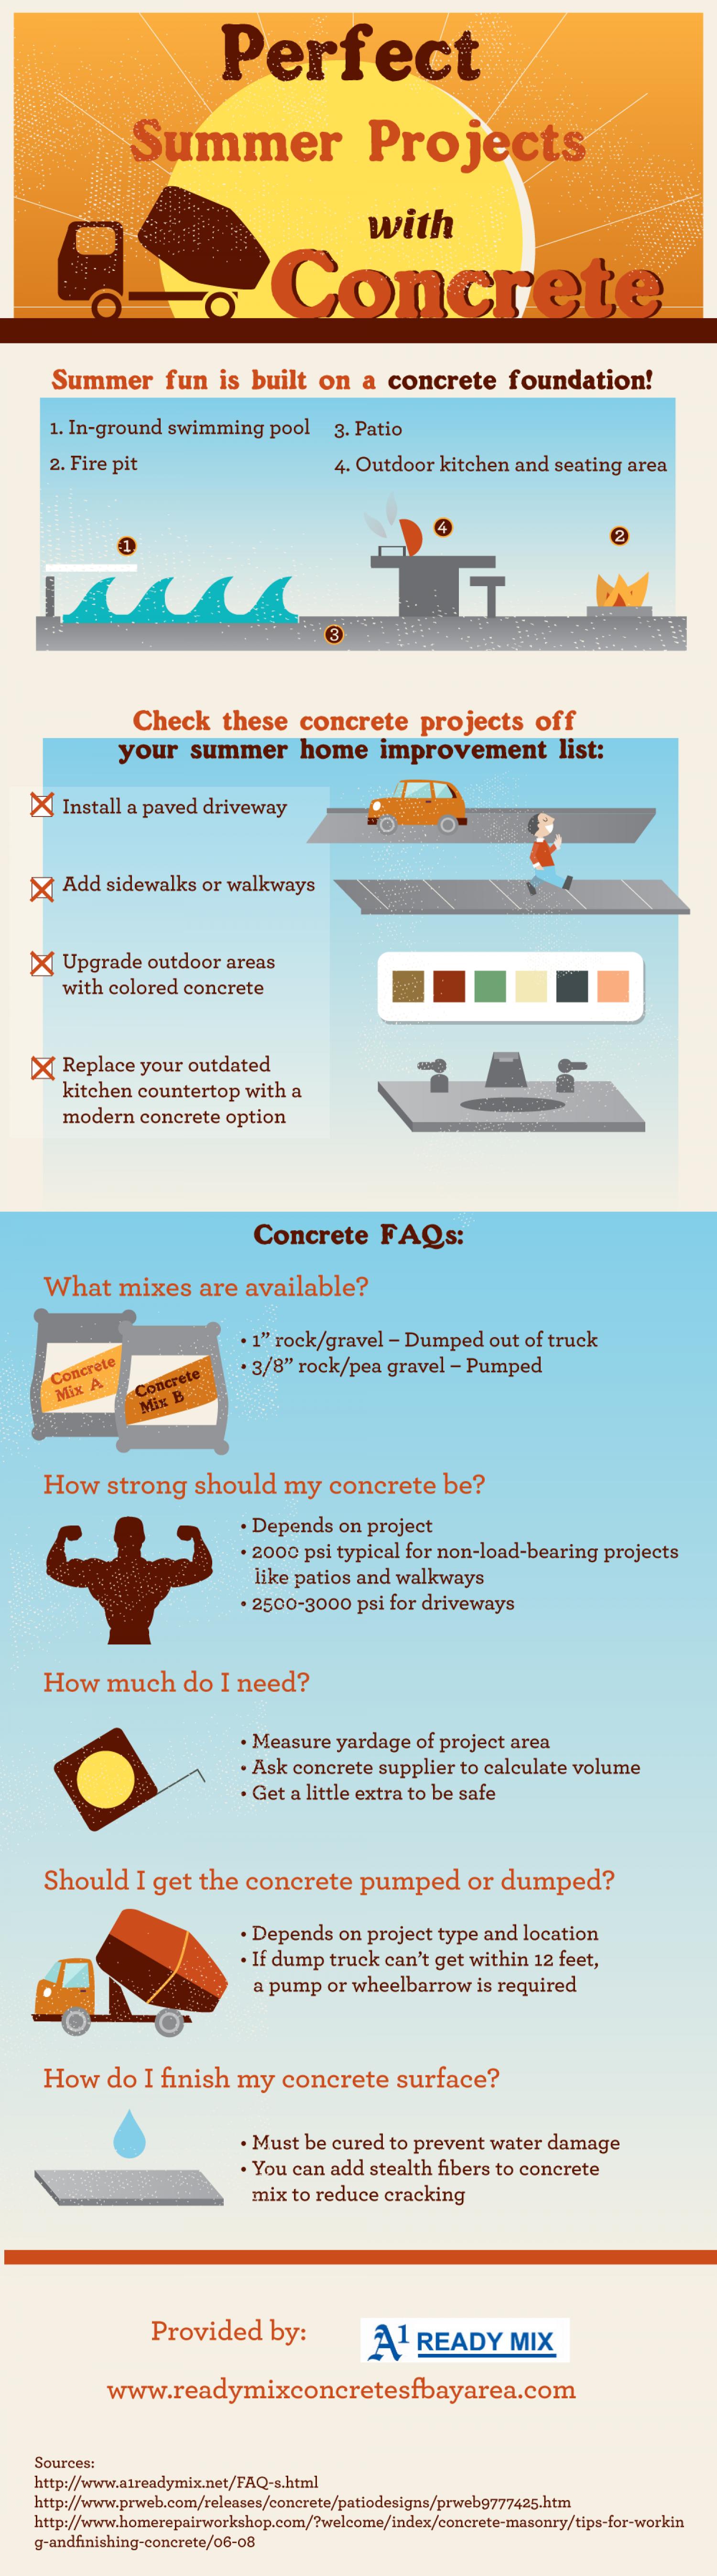 Perfect Summer Projects with Concrete Infographic